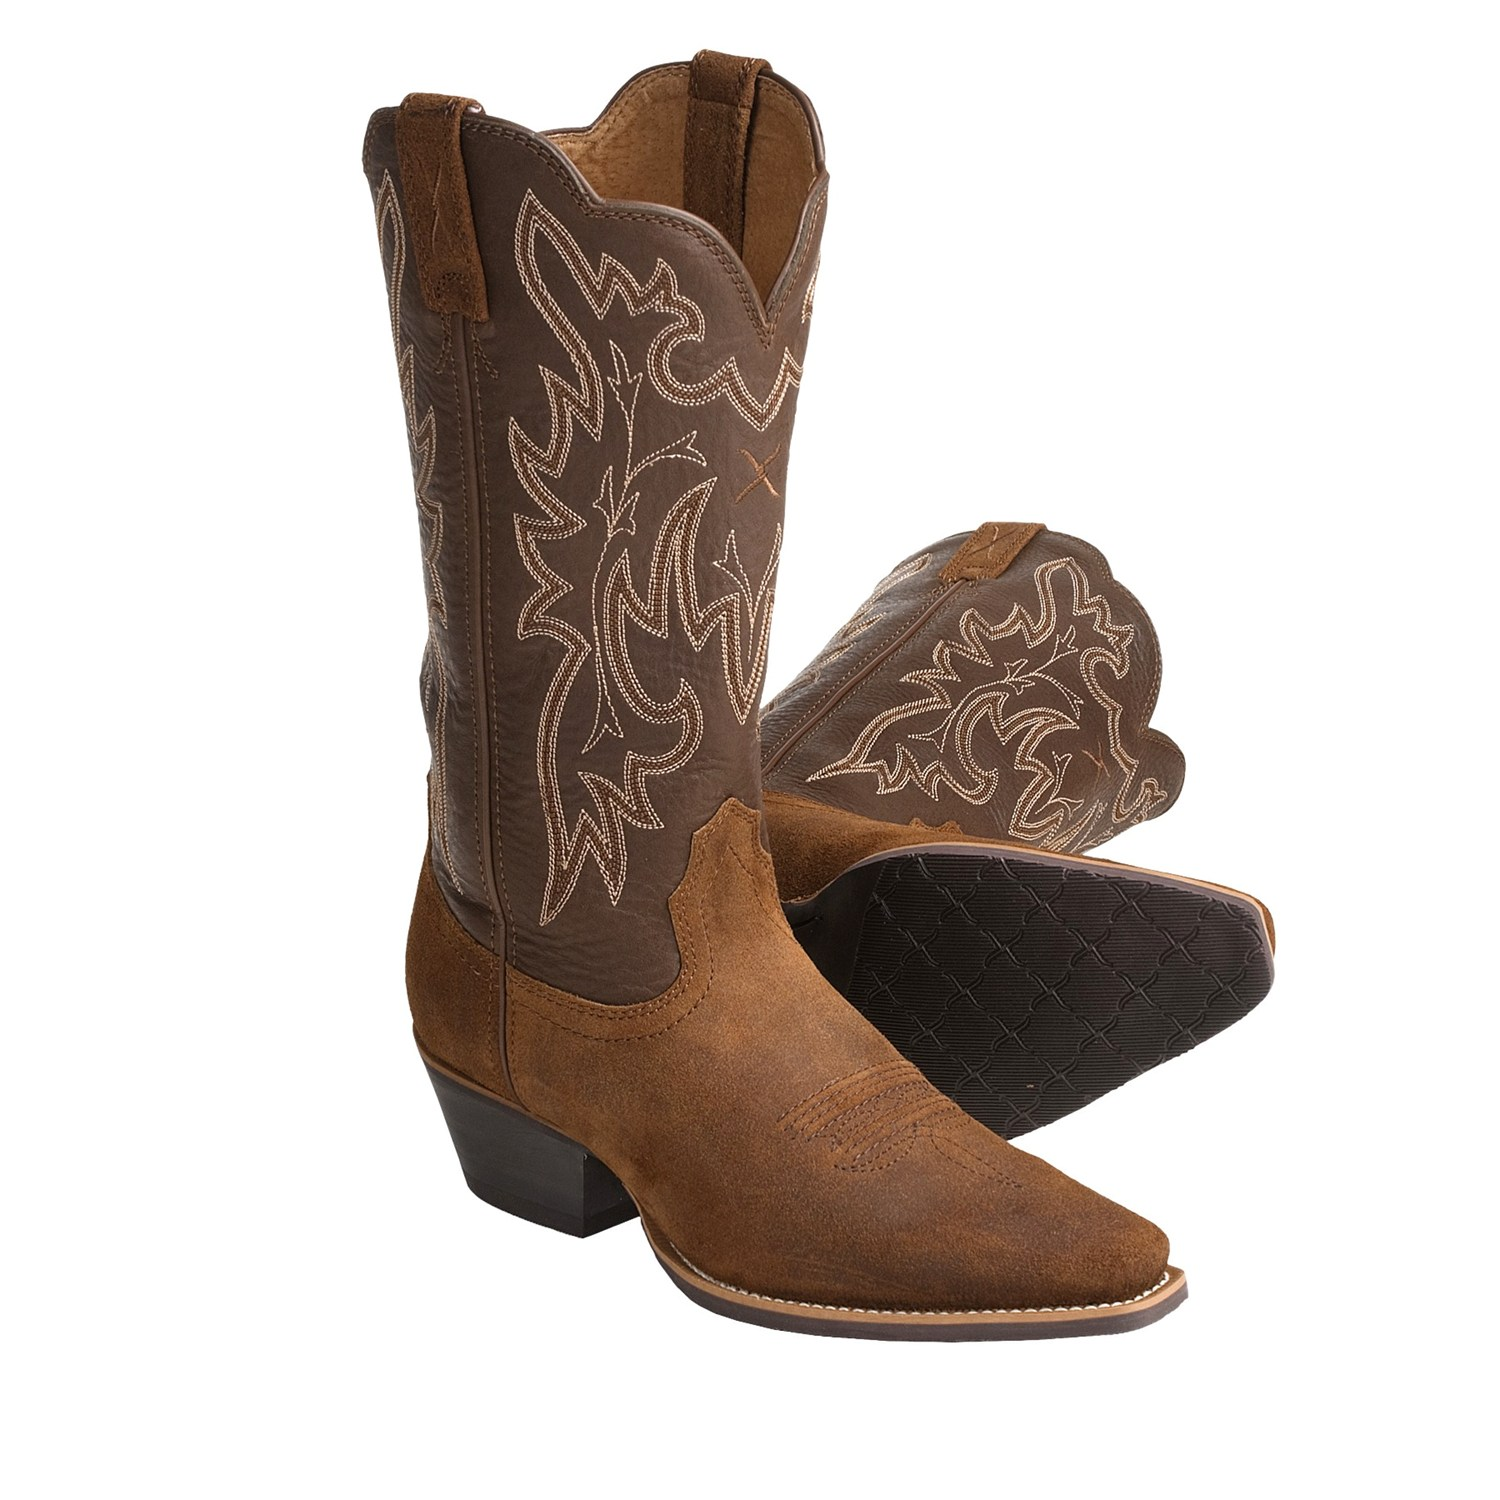 Best Cowboy Boot Brands jiJIh1mi